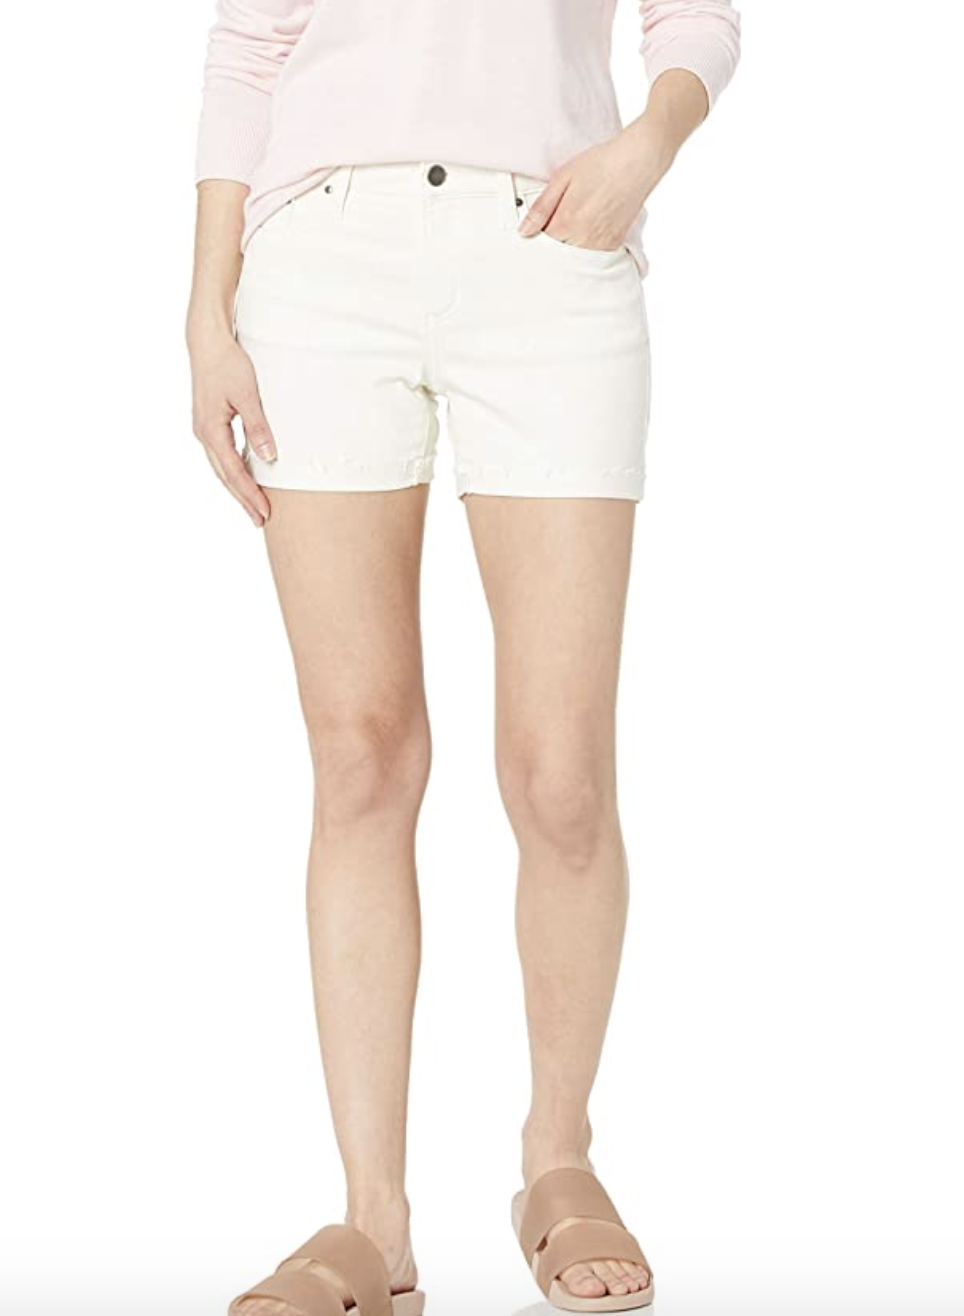 A model in white denim shorts that fall just above mid thigh